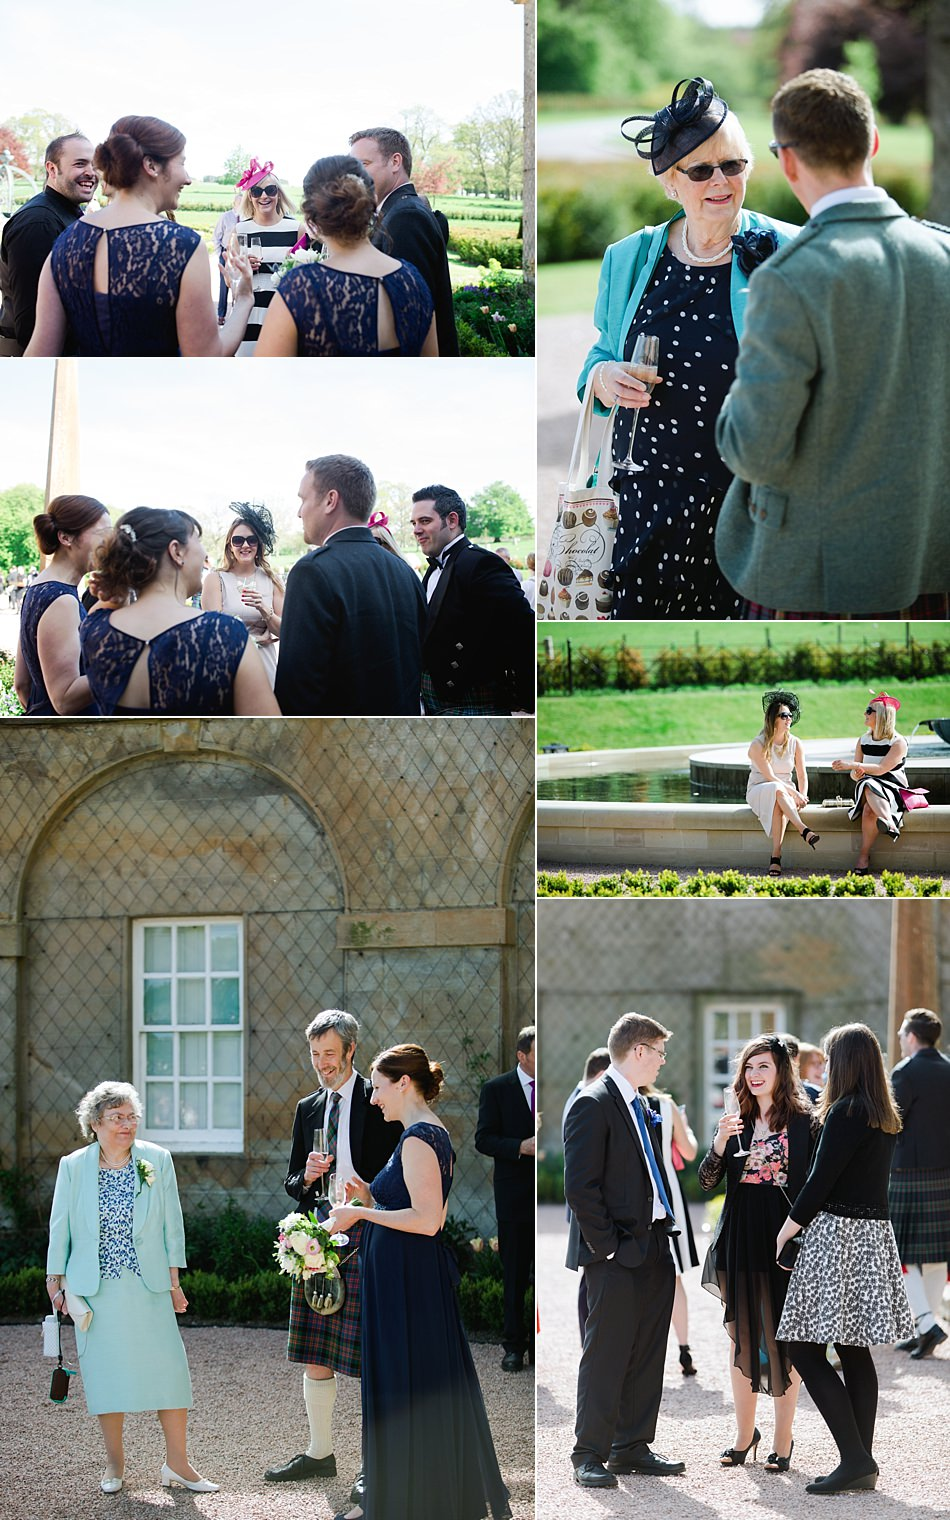 wedding dumfries house 4-11.jpg